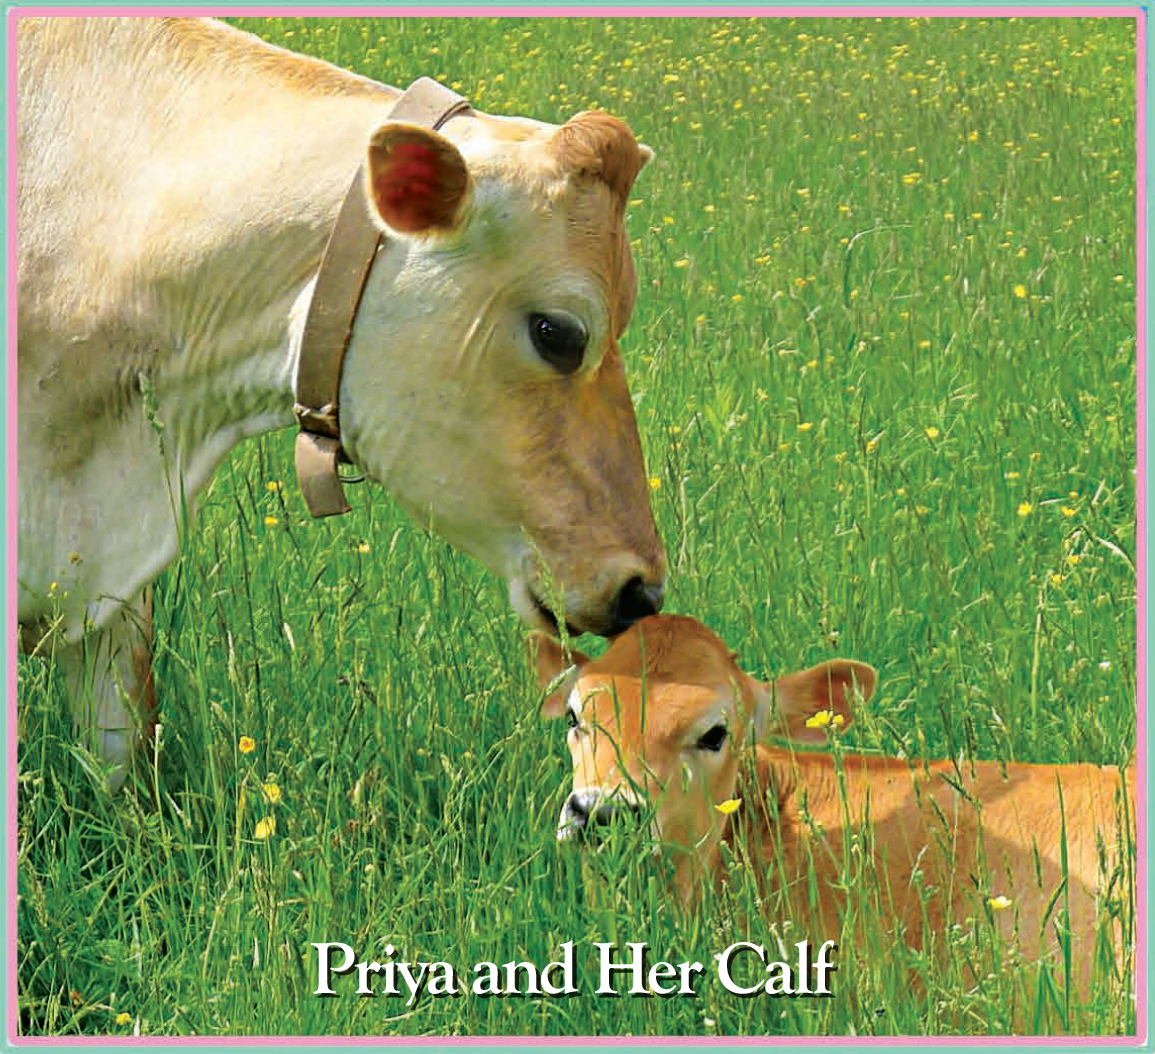 - Priya and her calf Hasita.The name Priya means very precious or pretty one, and Hasita means happy and free.